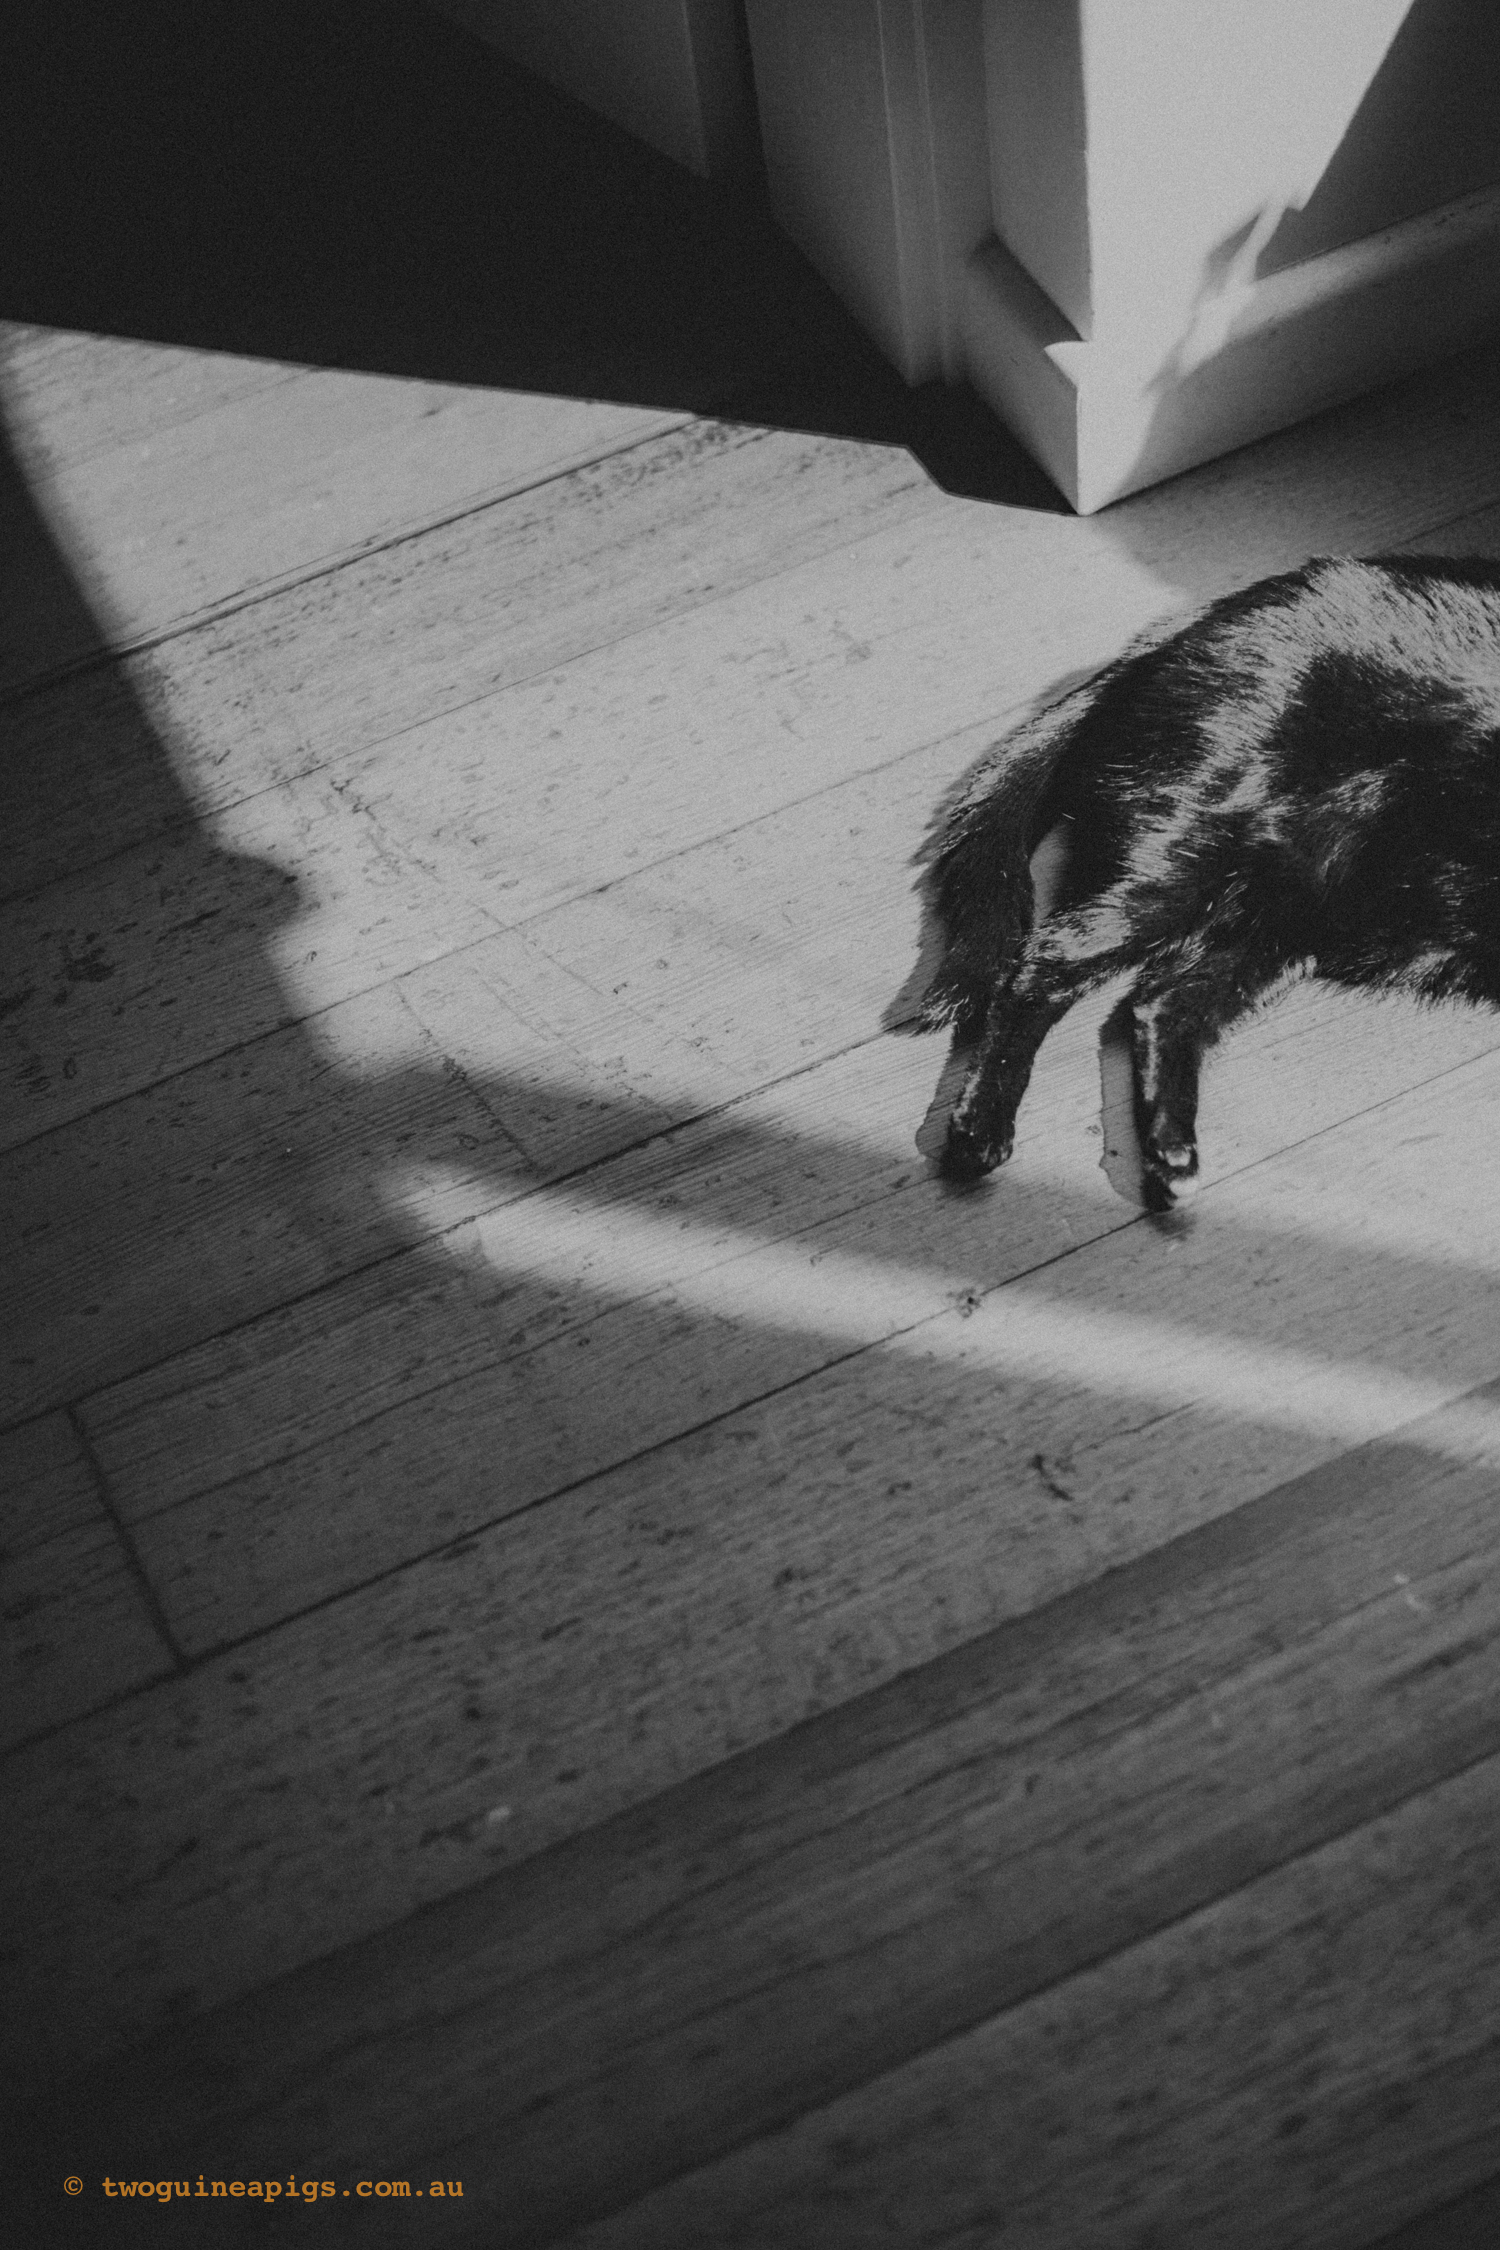 twoguineapigs_pet_photography_pf_sunroom_black_cats_1500-2.jpg